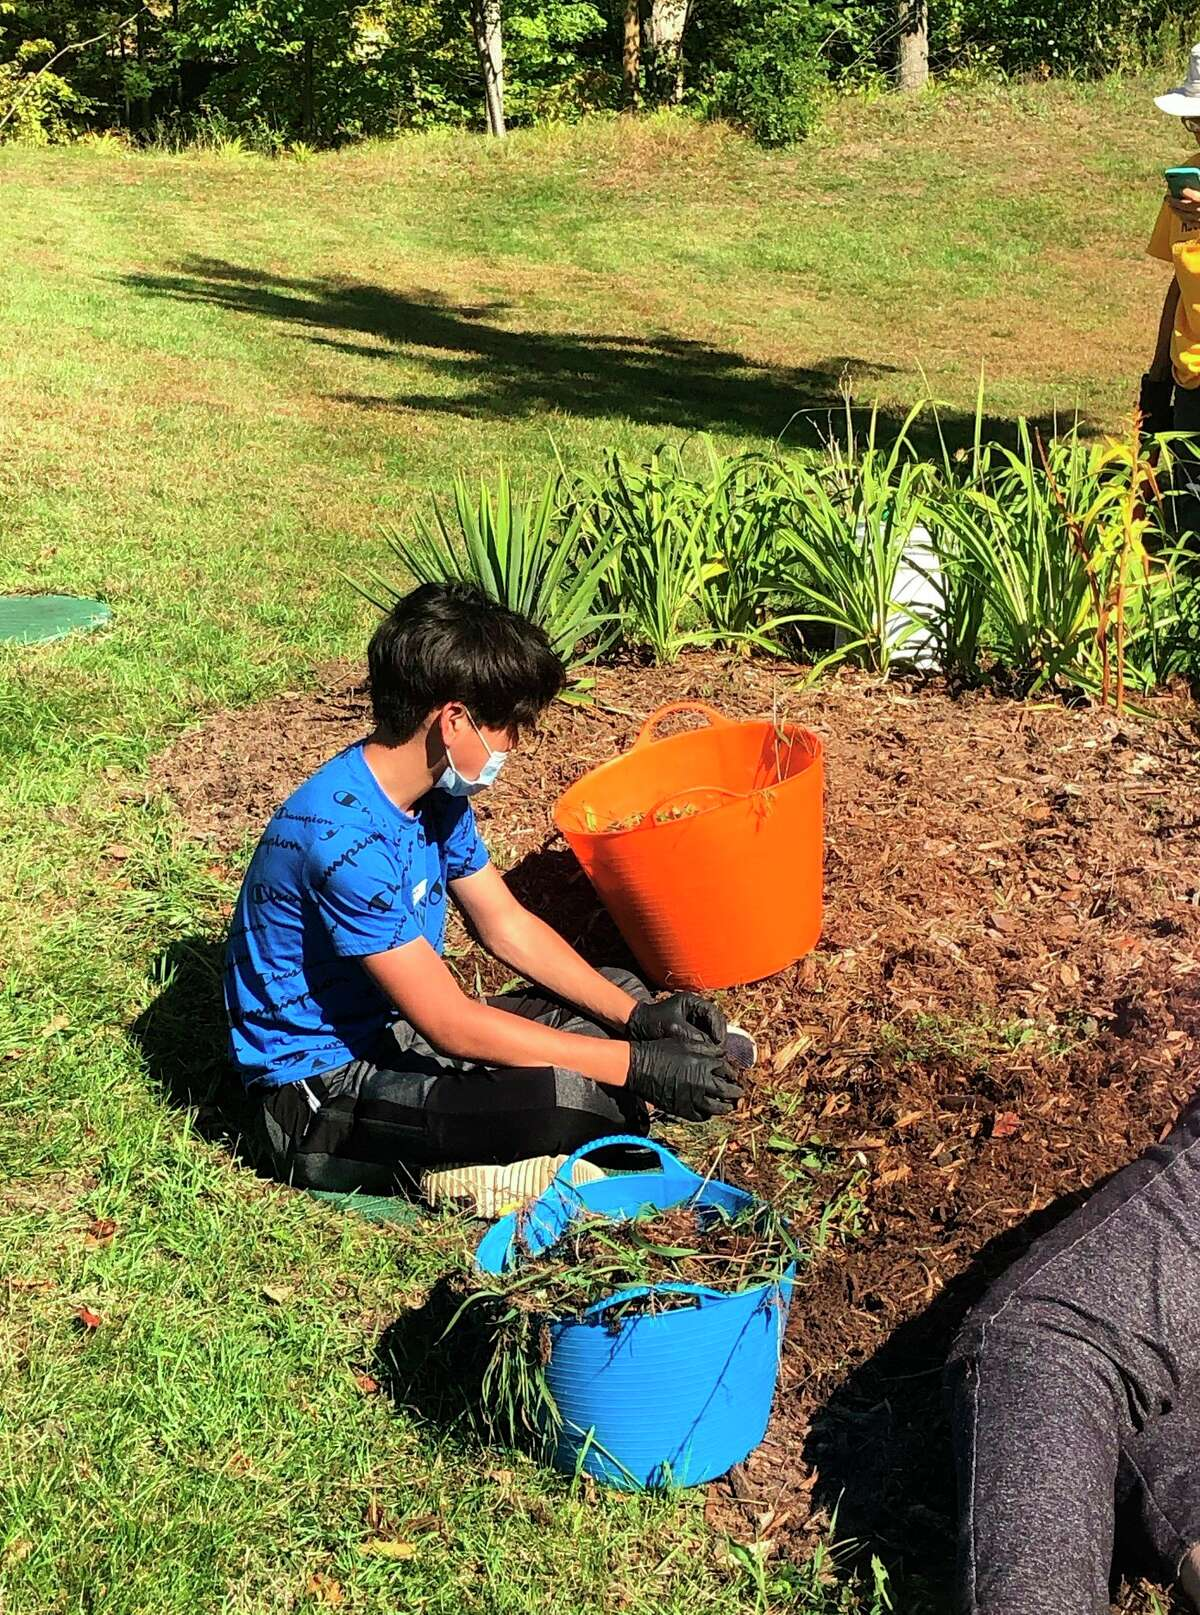 A 7th Grade Student from Benzie Central Schools helps clean out a flower bed in Benzonia as part of Service Above Self Day. (Courtesy Photo/Steven Stephens)